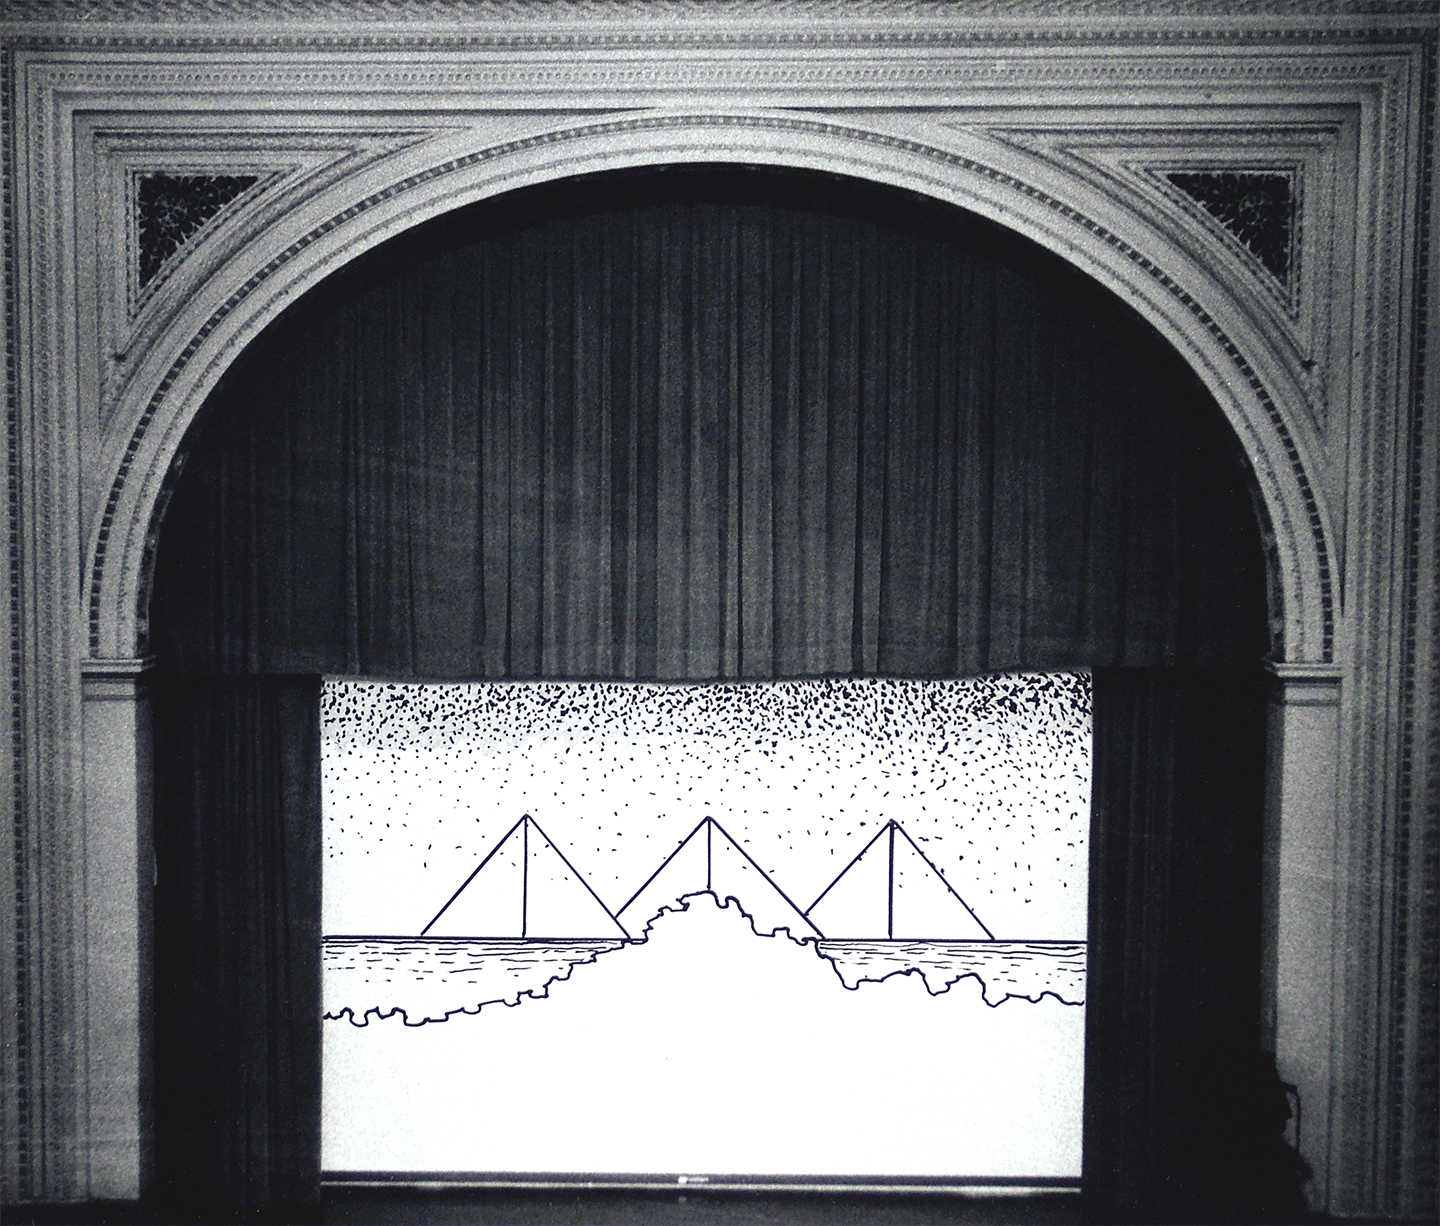 "Fullerton Hall Stage No. 2, 1968  10"" x 12"" Ink on photograph"